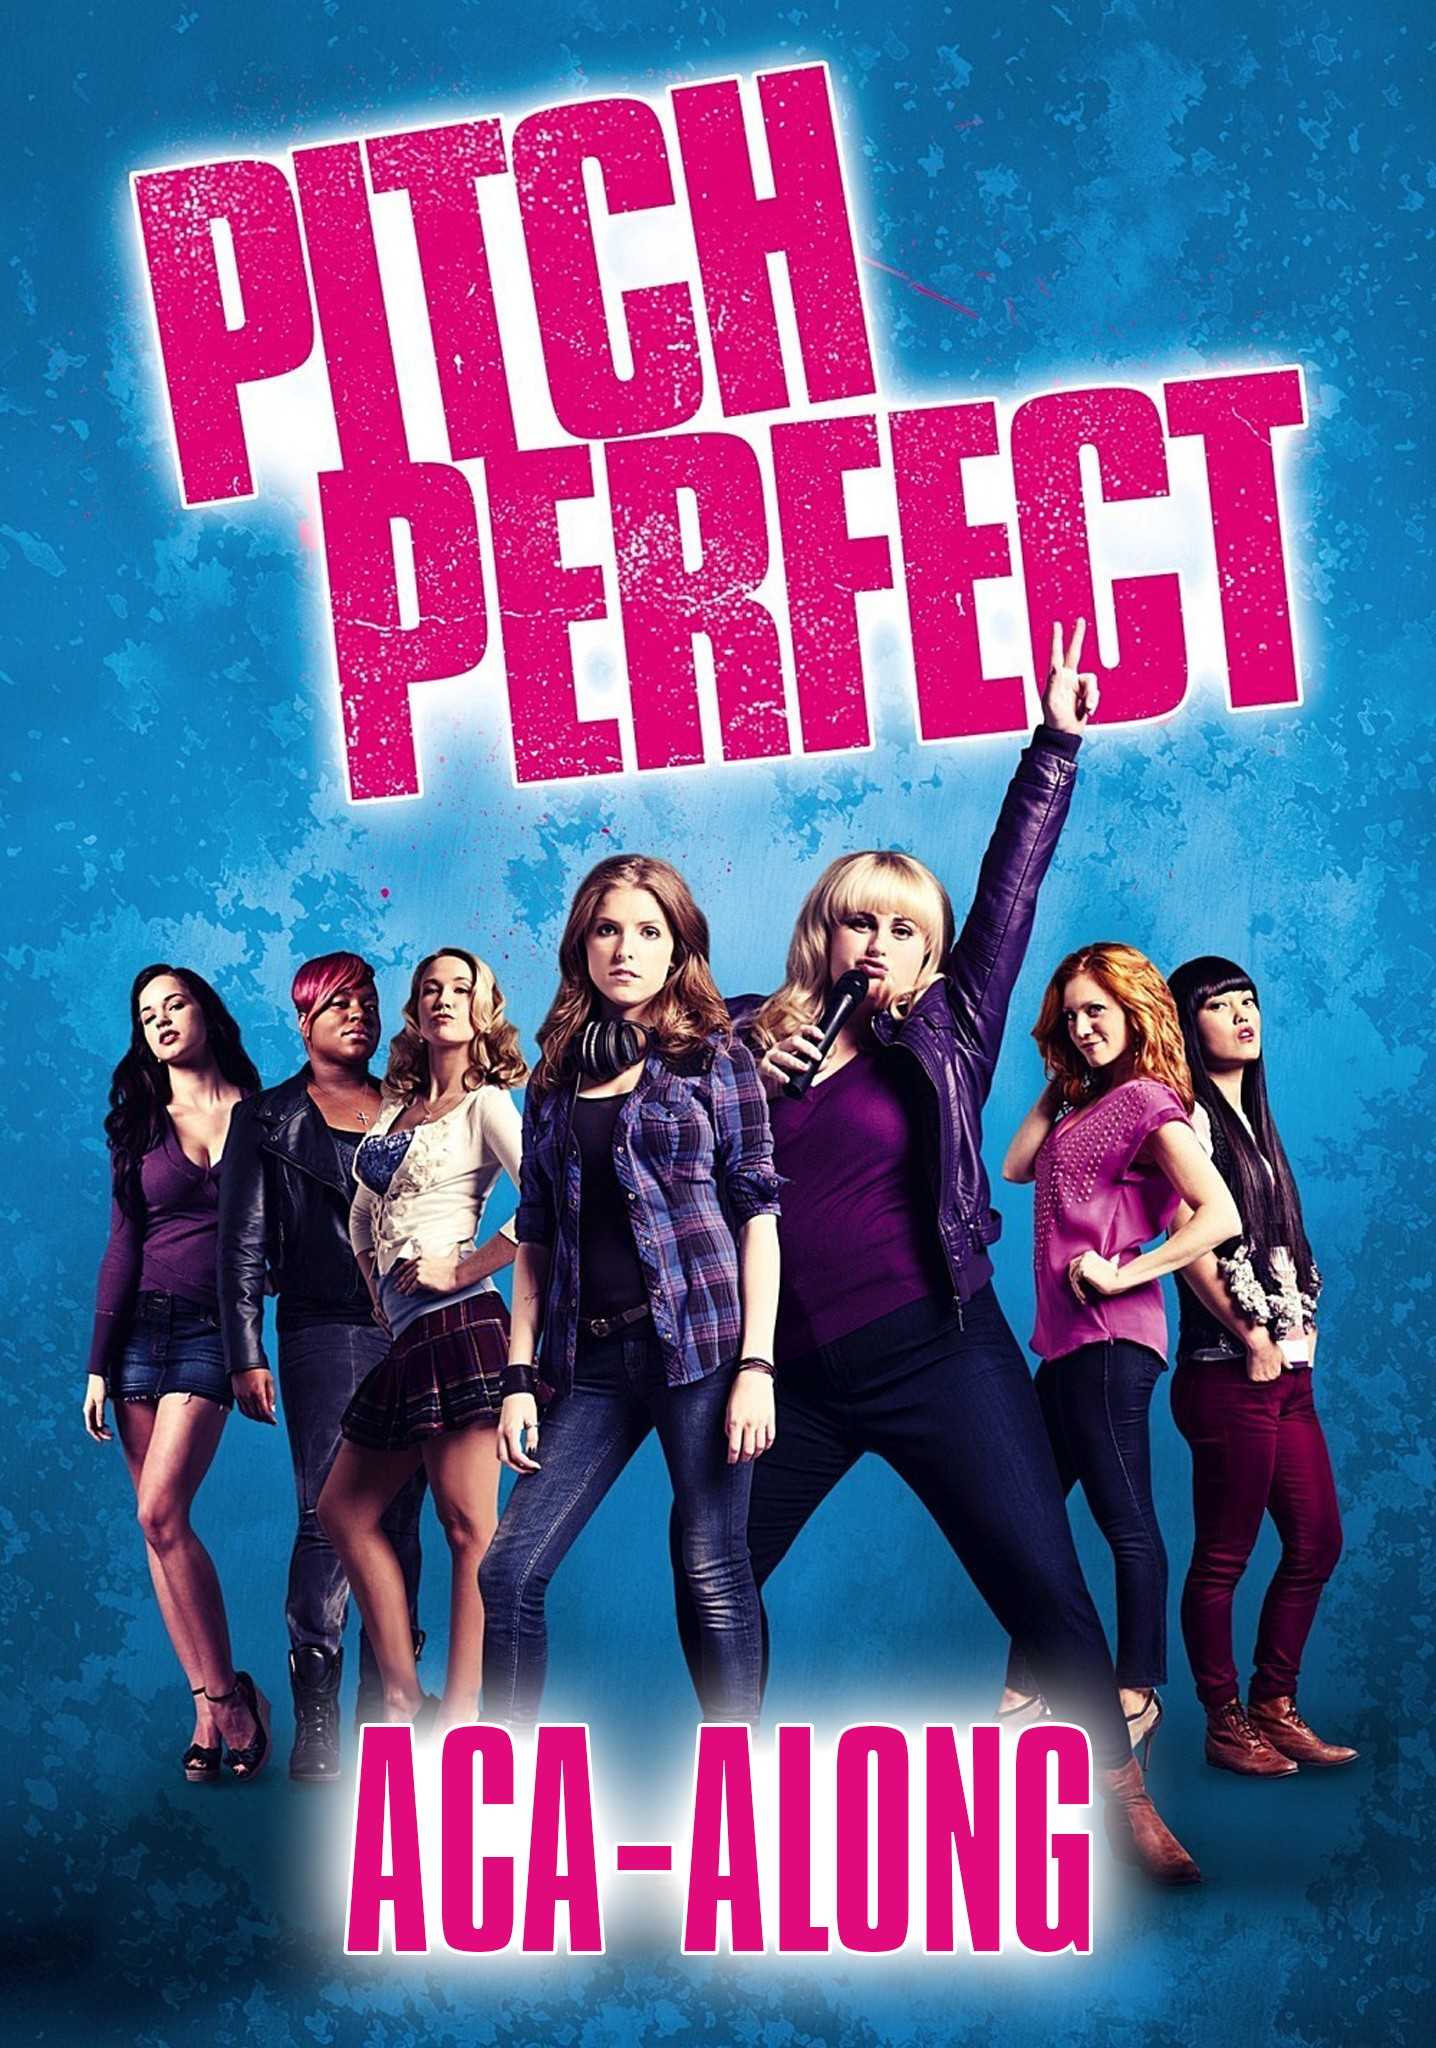 PITCH PERFECT : ACA-ALONG